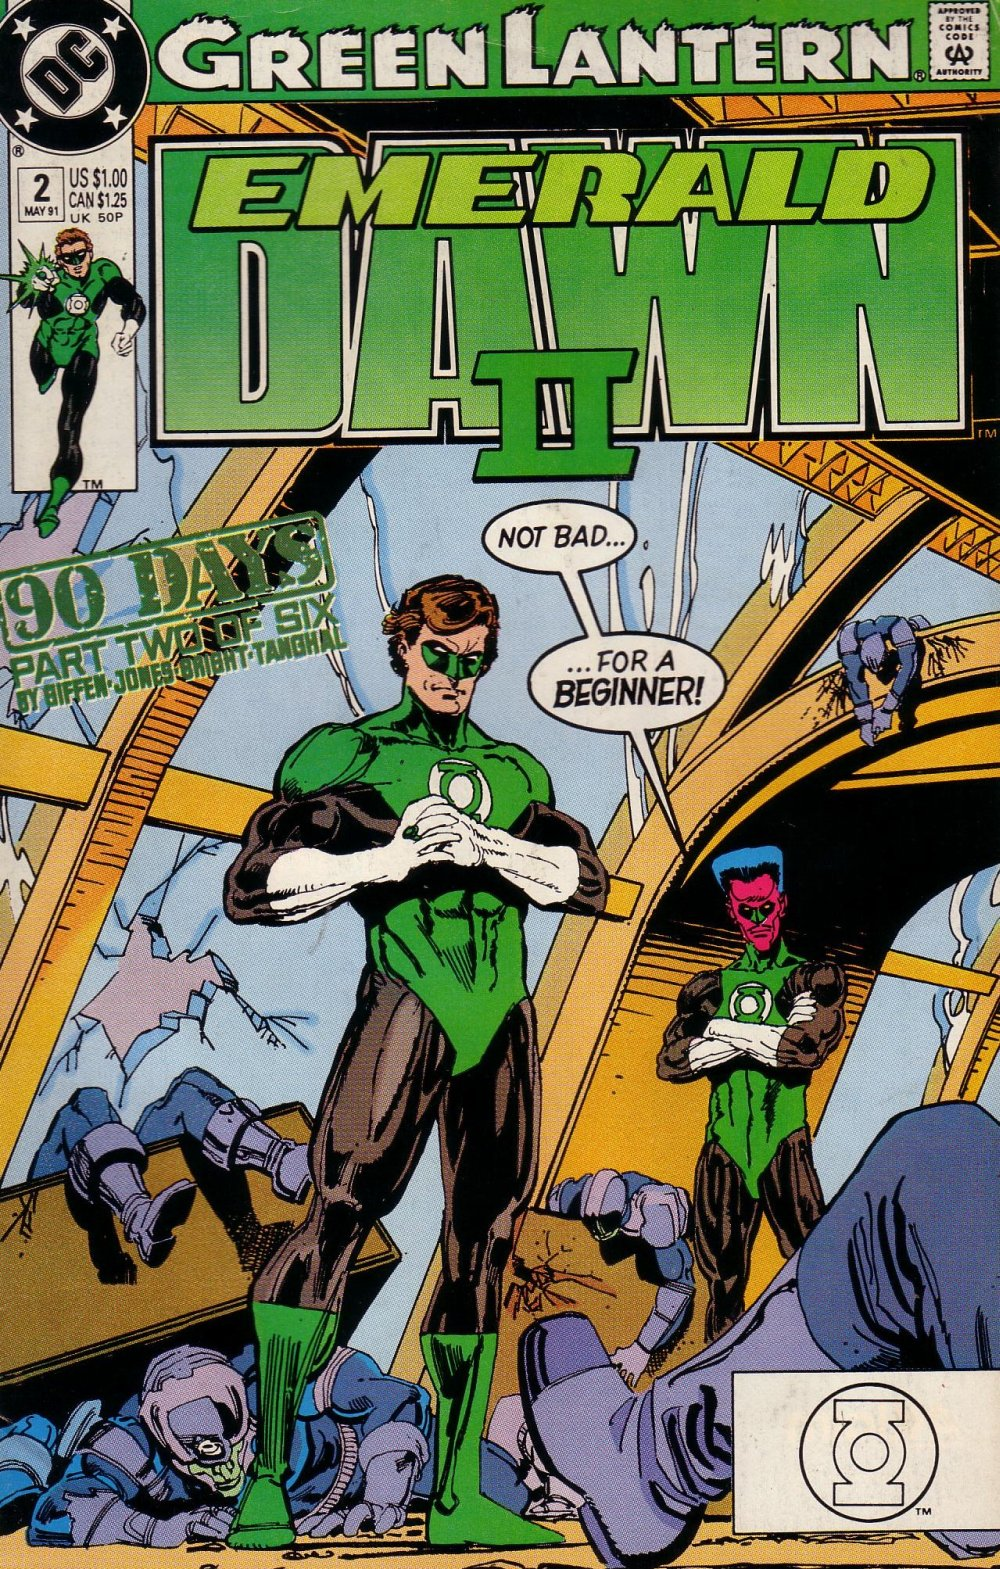 Green Lantern- Emerald Dawn 2 [DC] Mini 1 0002.JPG